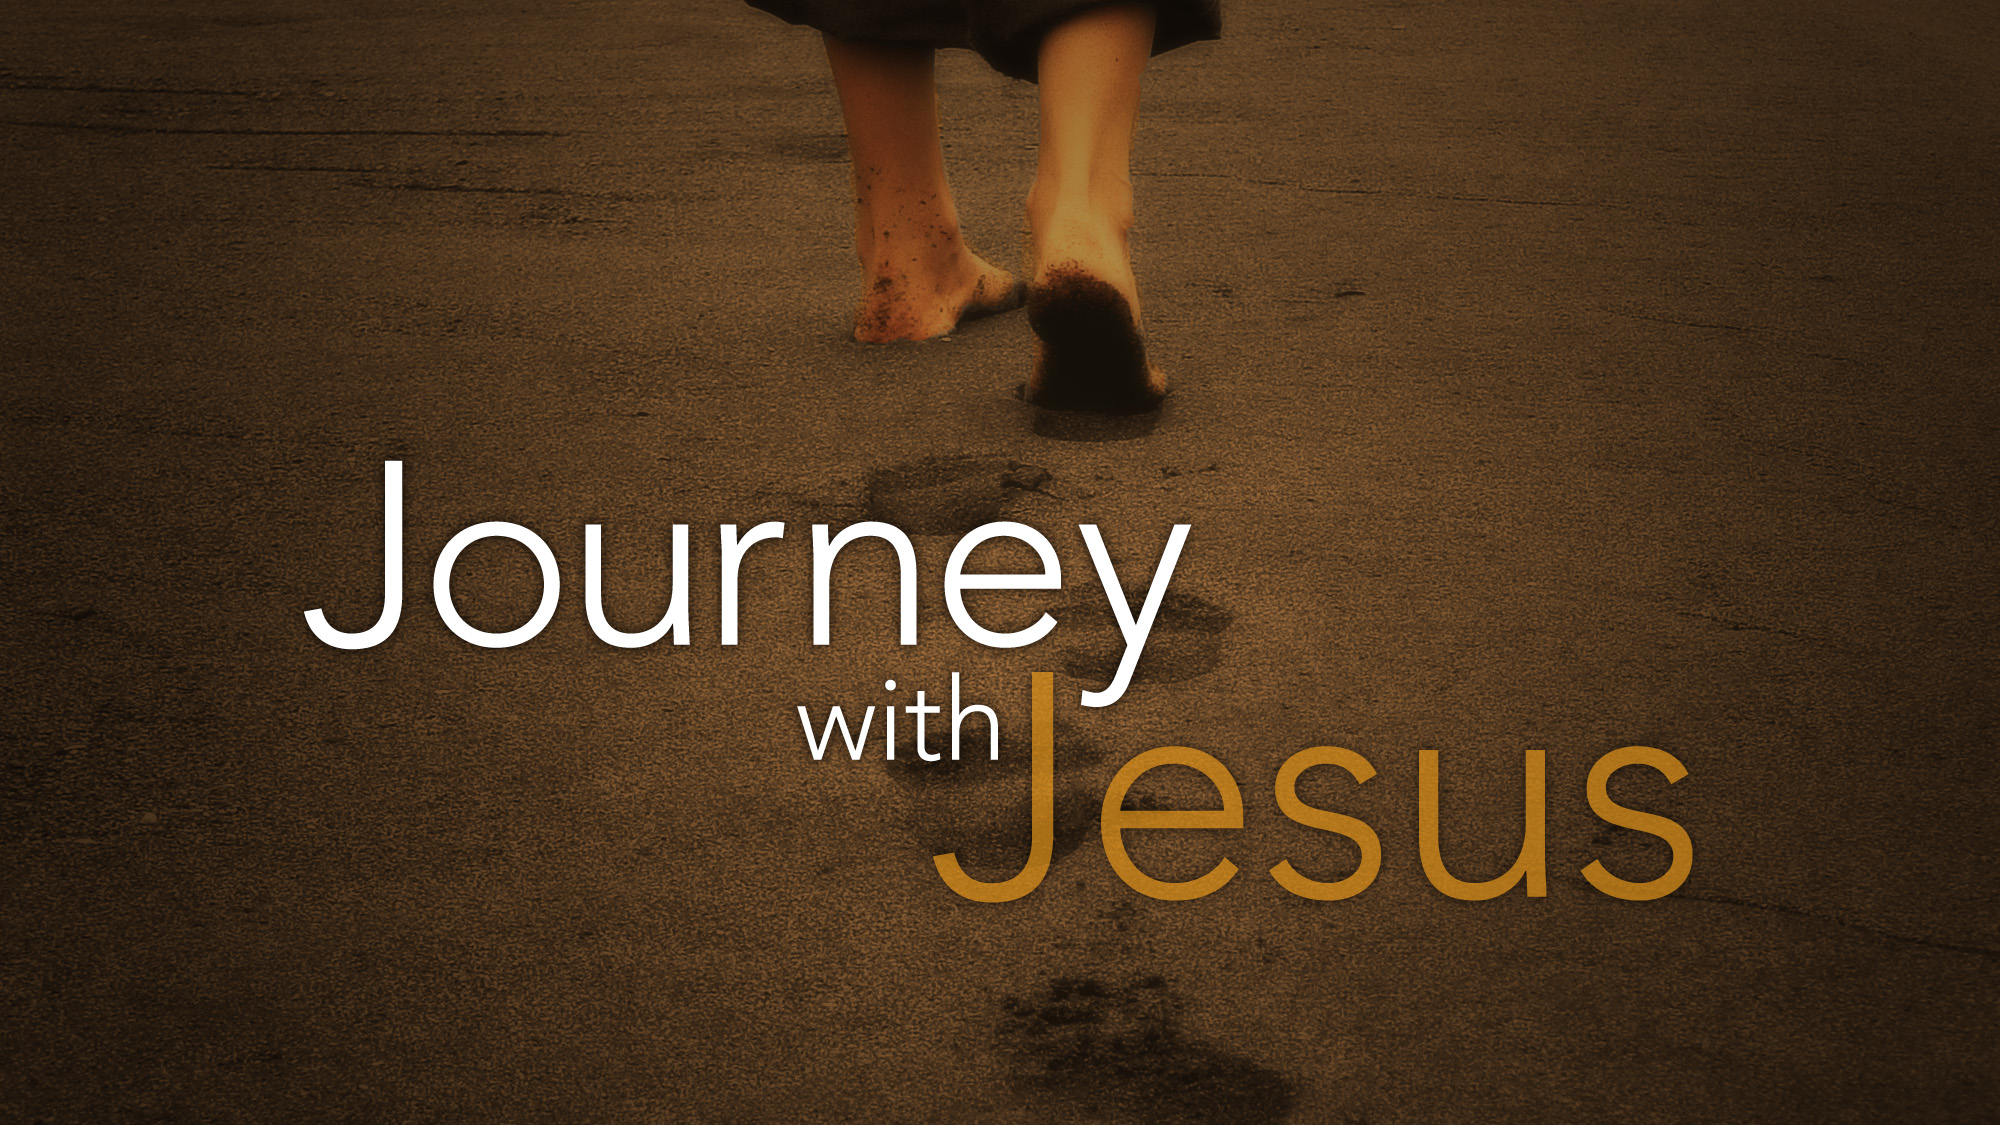 journey-w-jesus-fat-sands-footprints